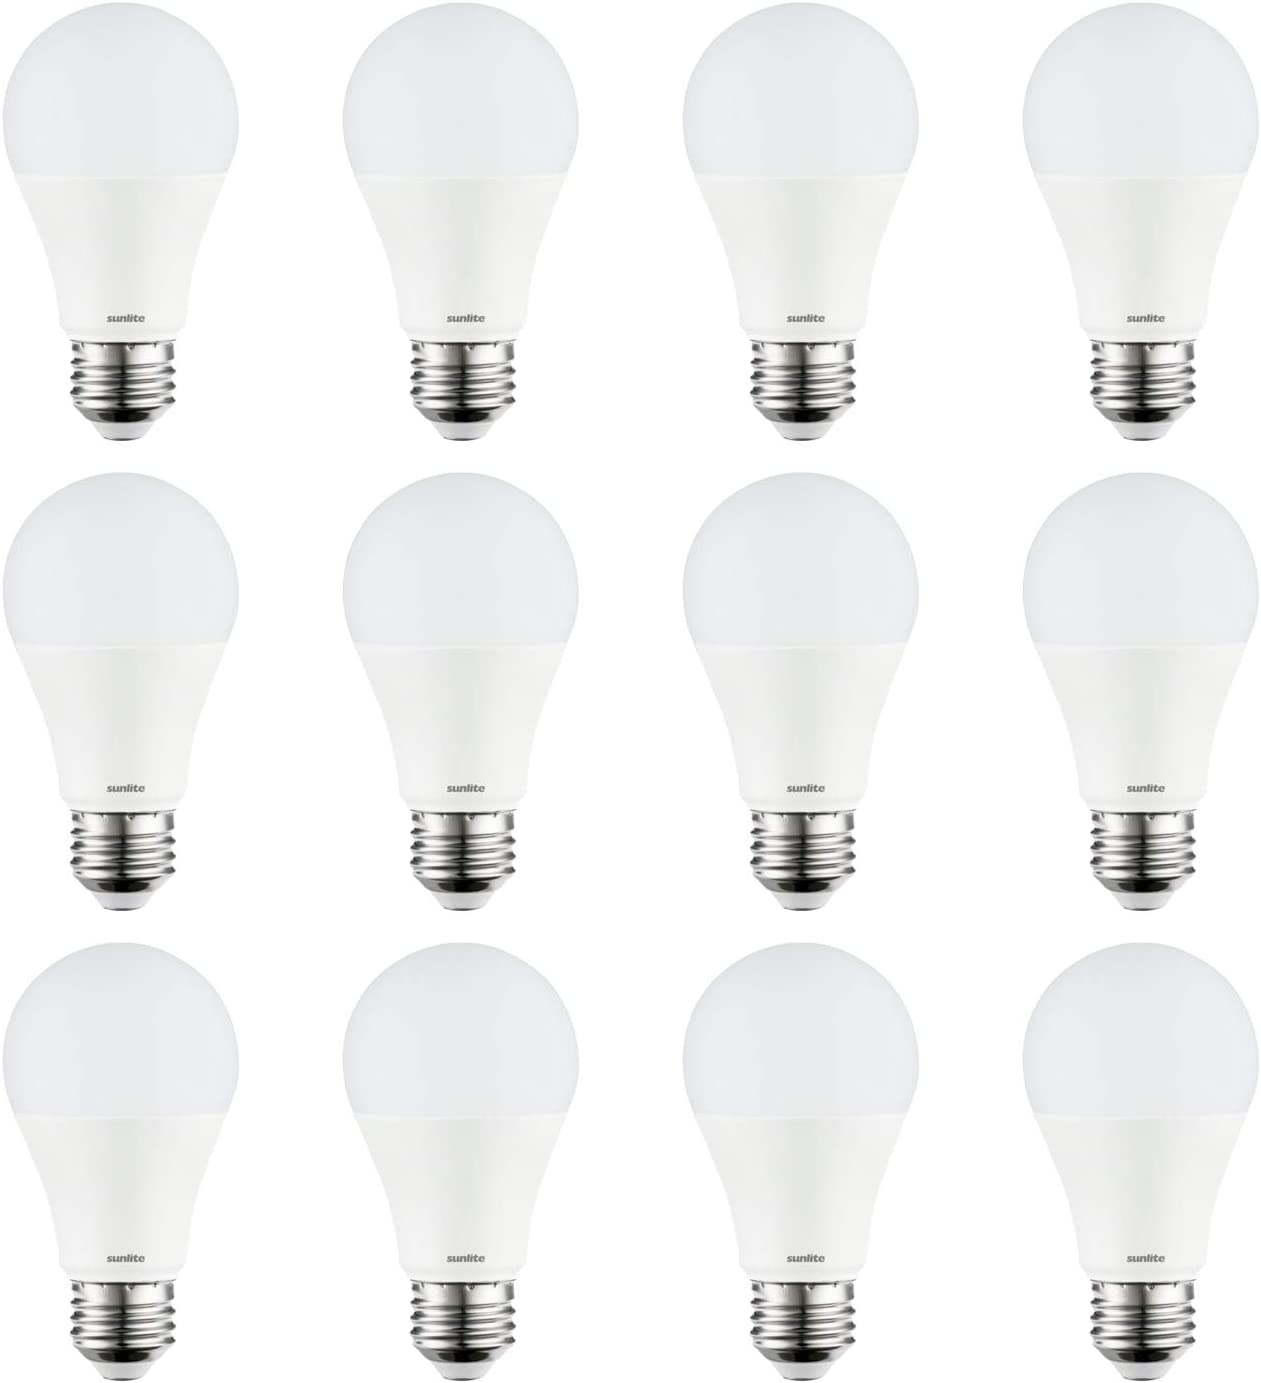 Sunlite 41375-SU LED A19 Household Light E Today's Max 47% OFF only Watts 14 100W Bulbs